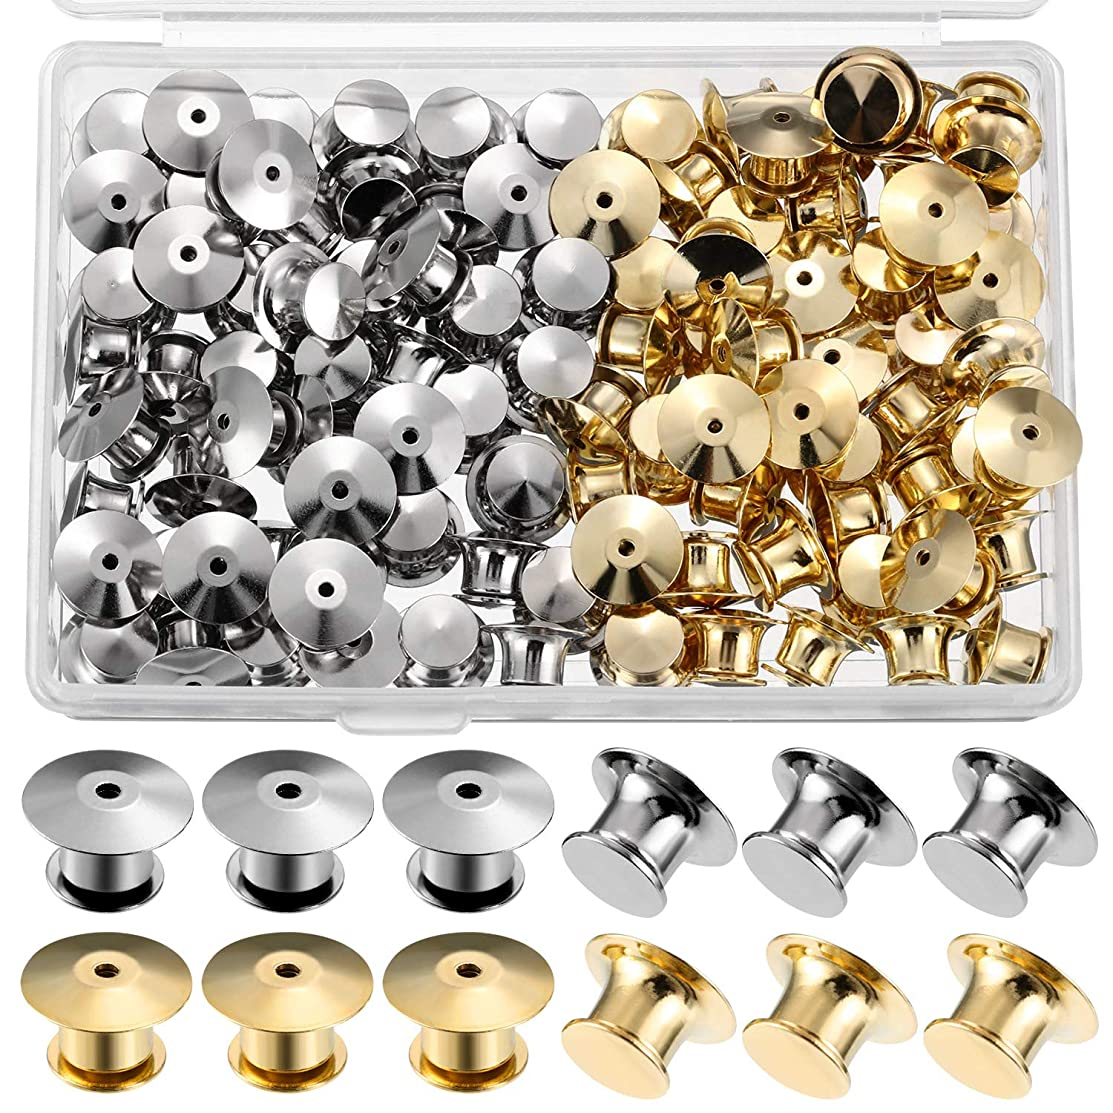 Mudder Locking Pin Keepers Backs, No Tool Required(Silver and Gold, 100 Pieces)